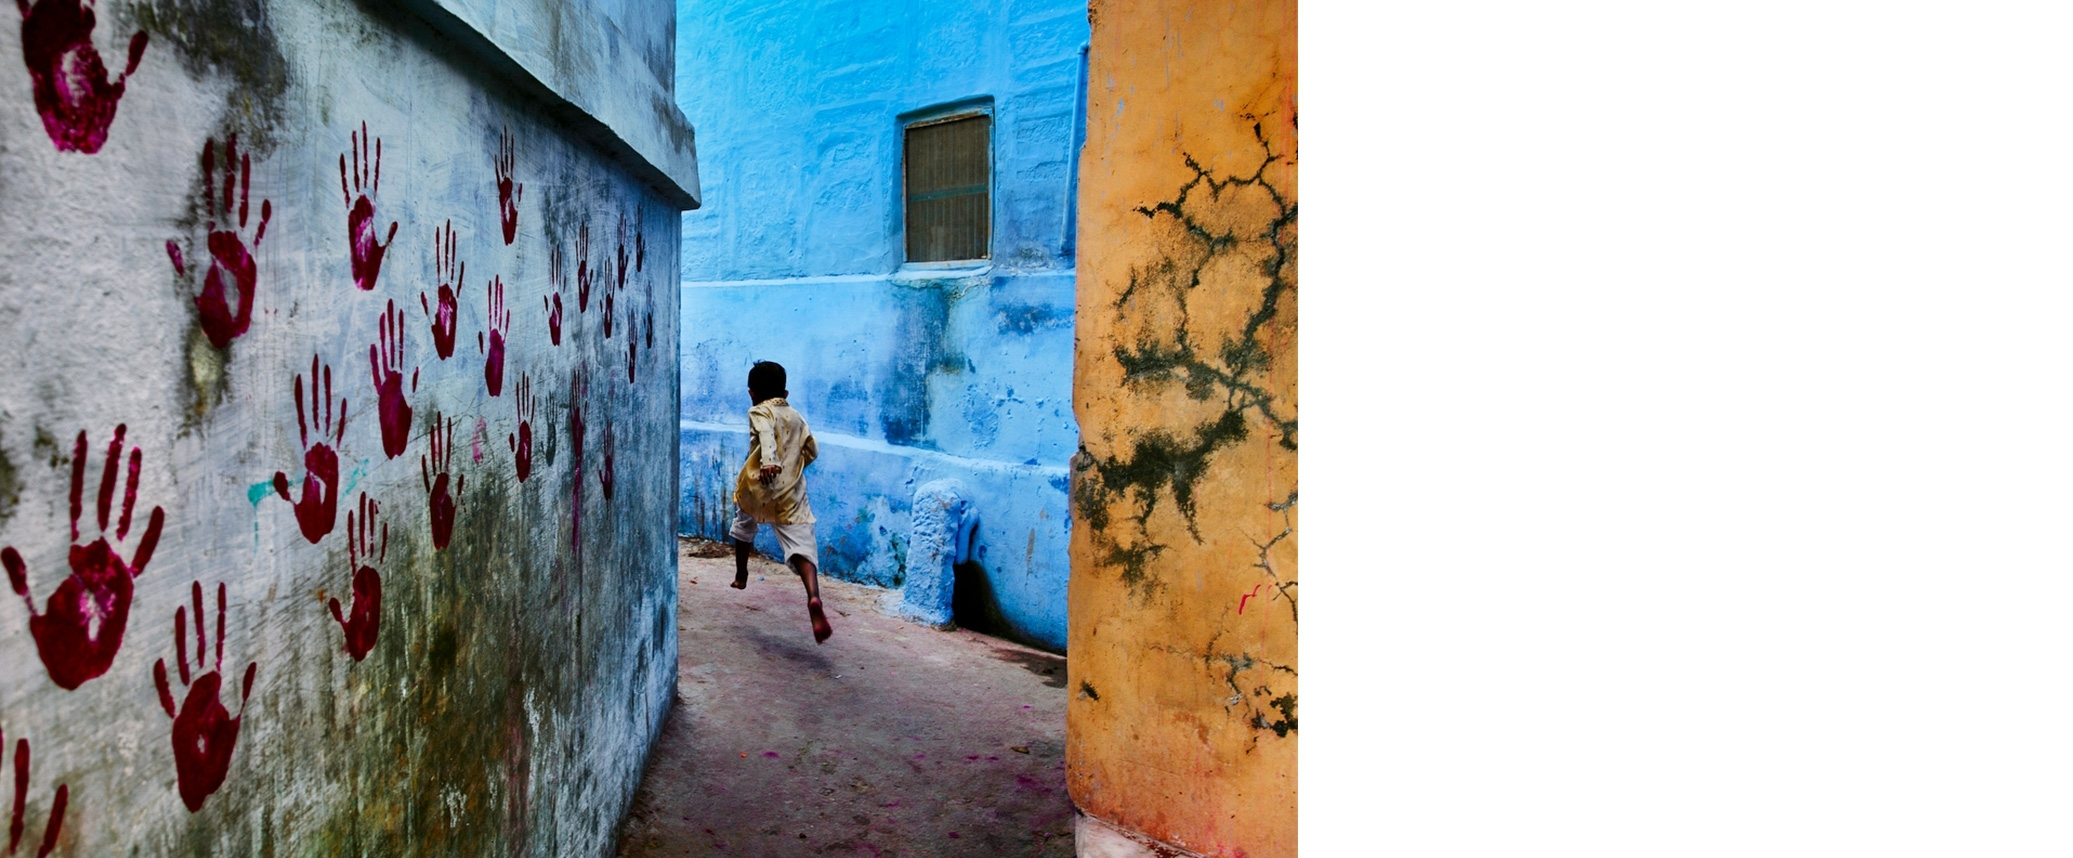 Mccurry master image exhibition